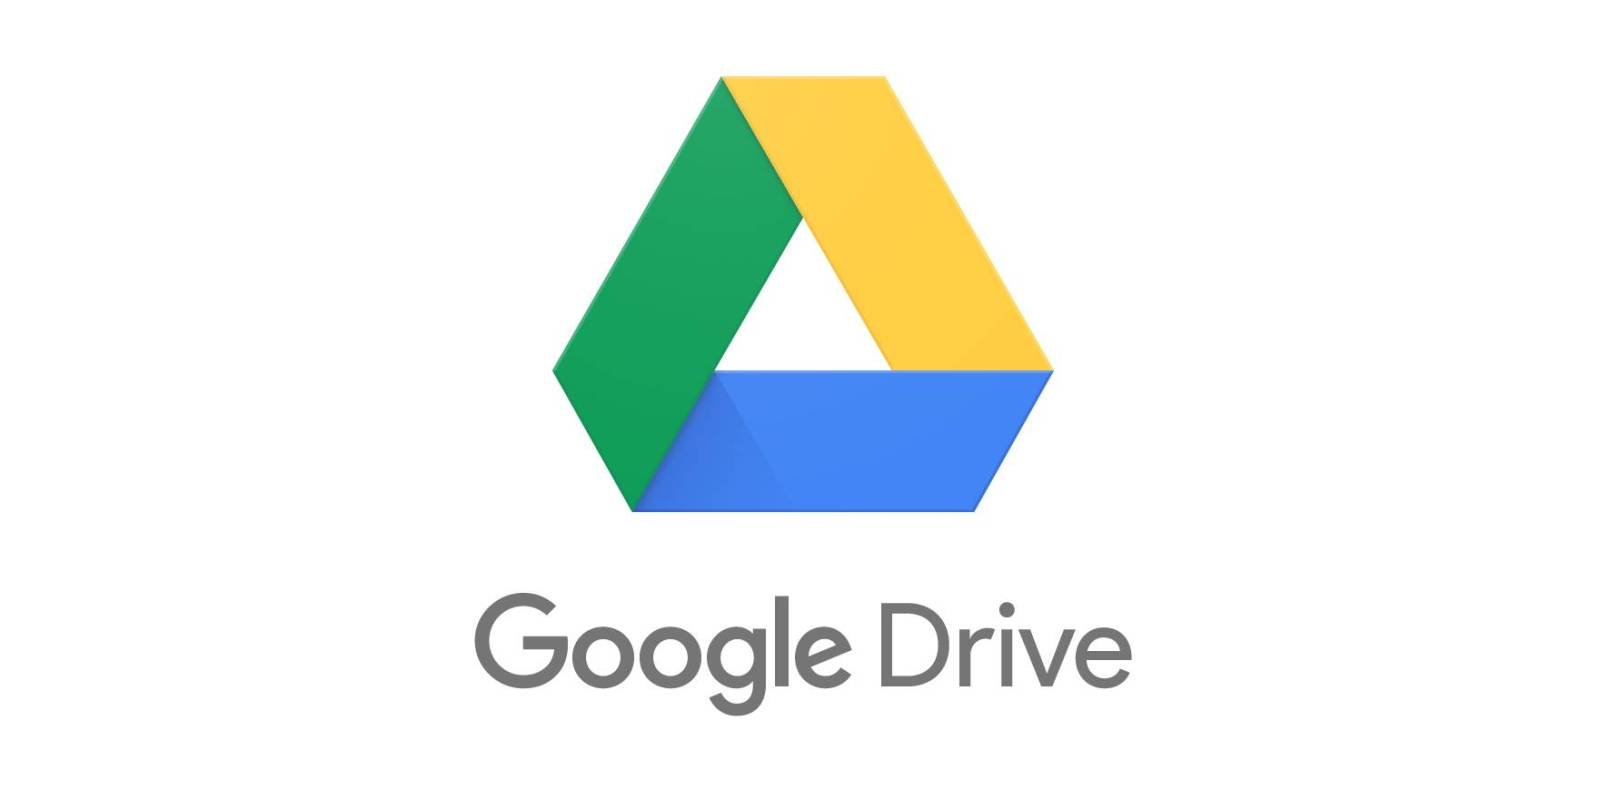 How To ByPass Google Drive Download Limit of 750GB